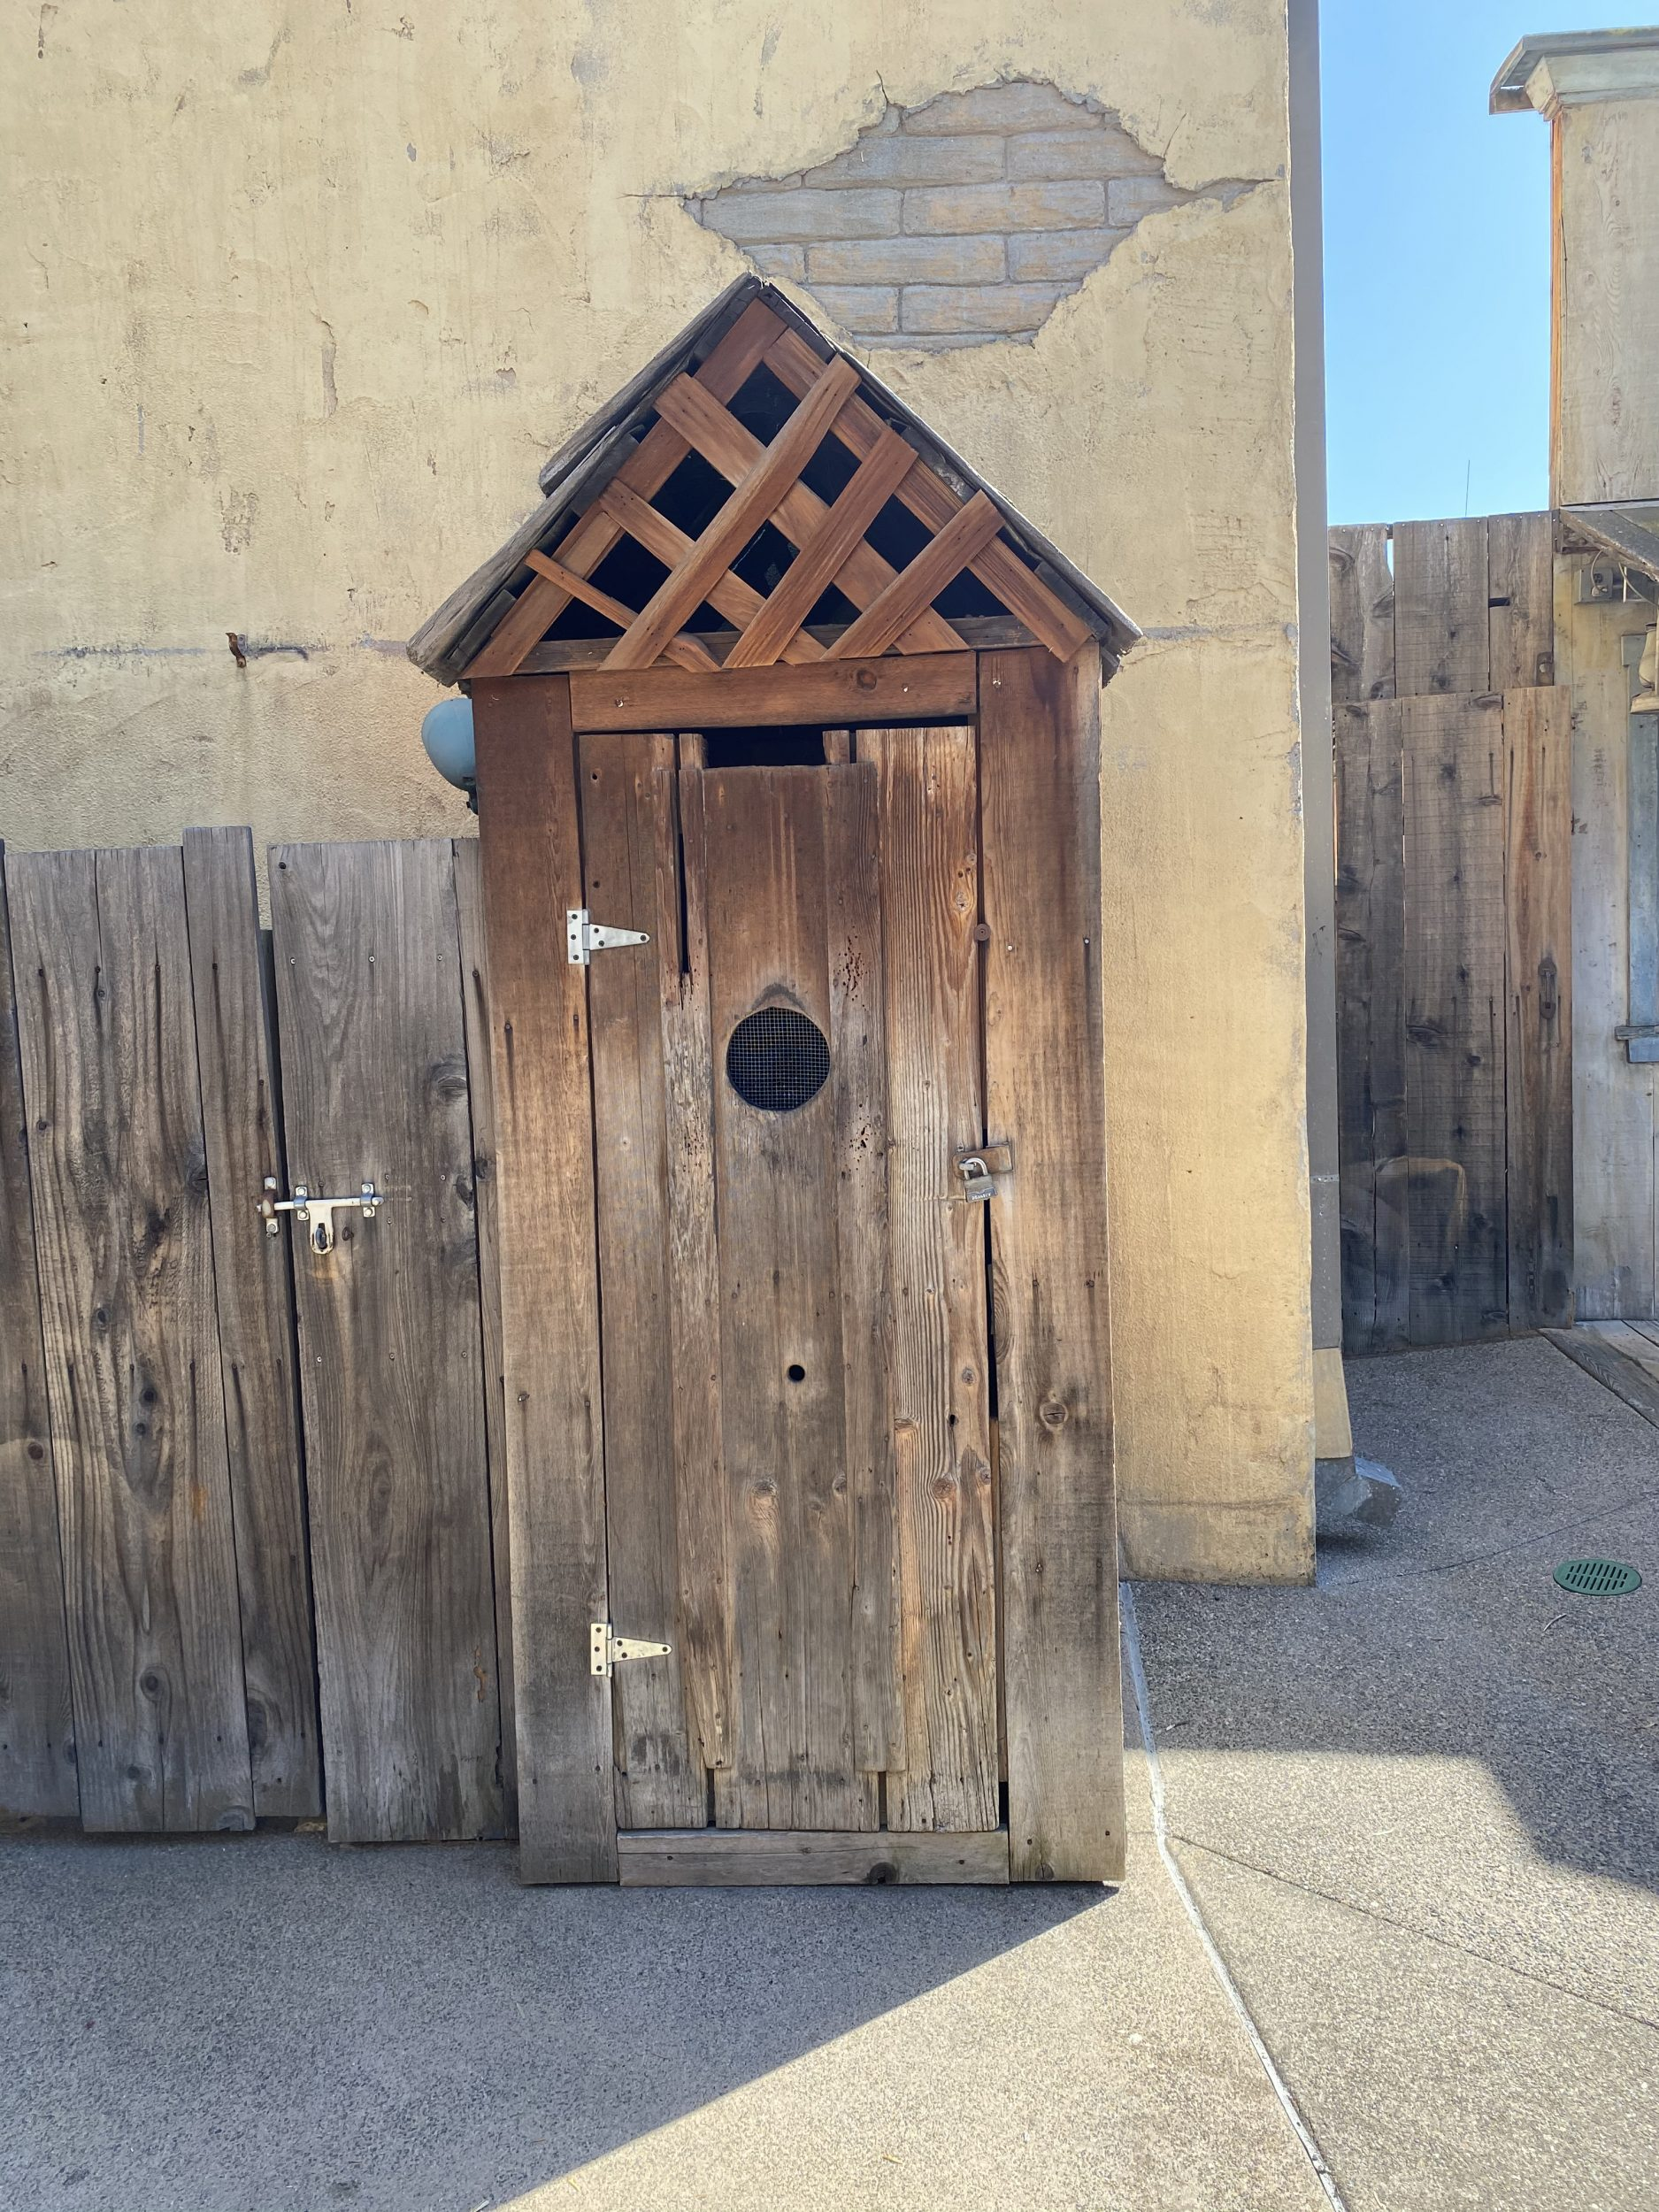 What an outhouse looked like back in history